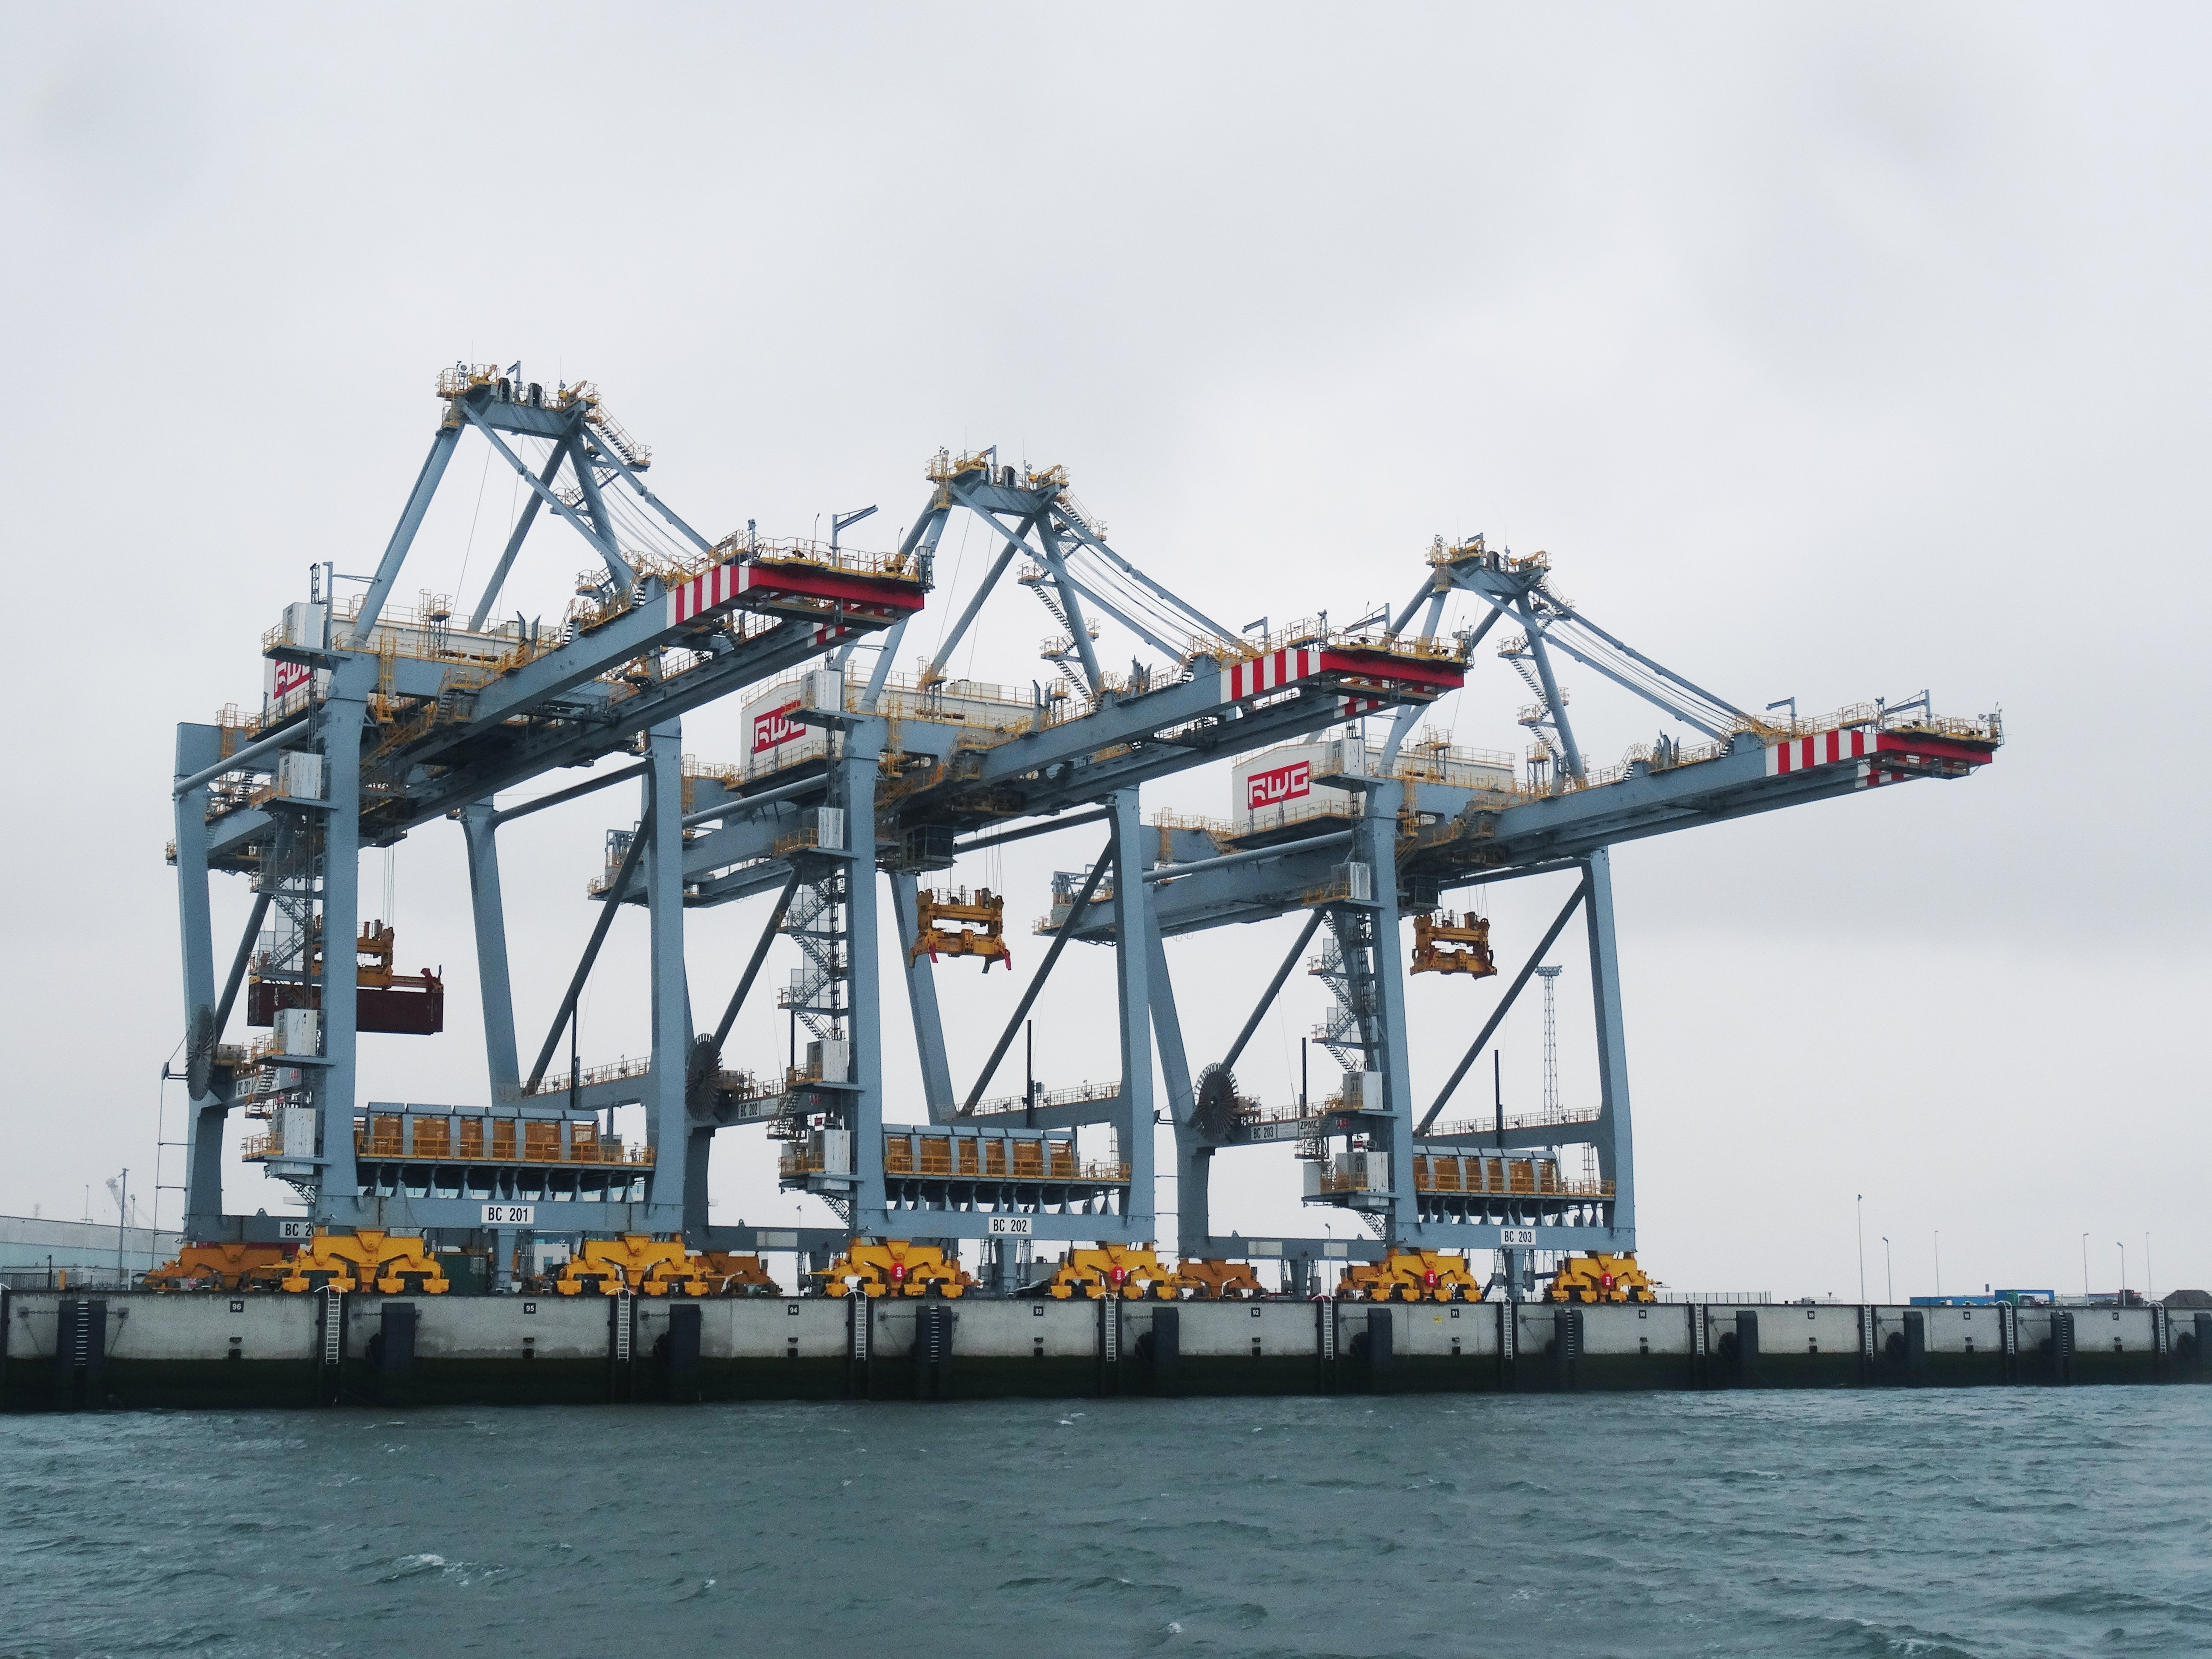 Three large freight cranes on the docks next to sea